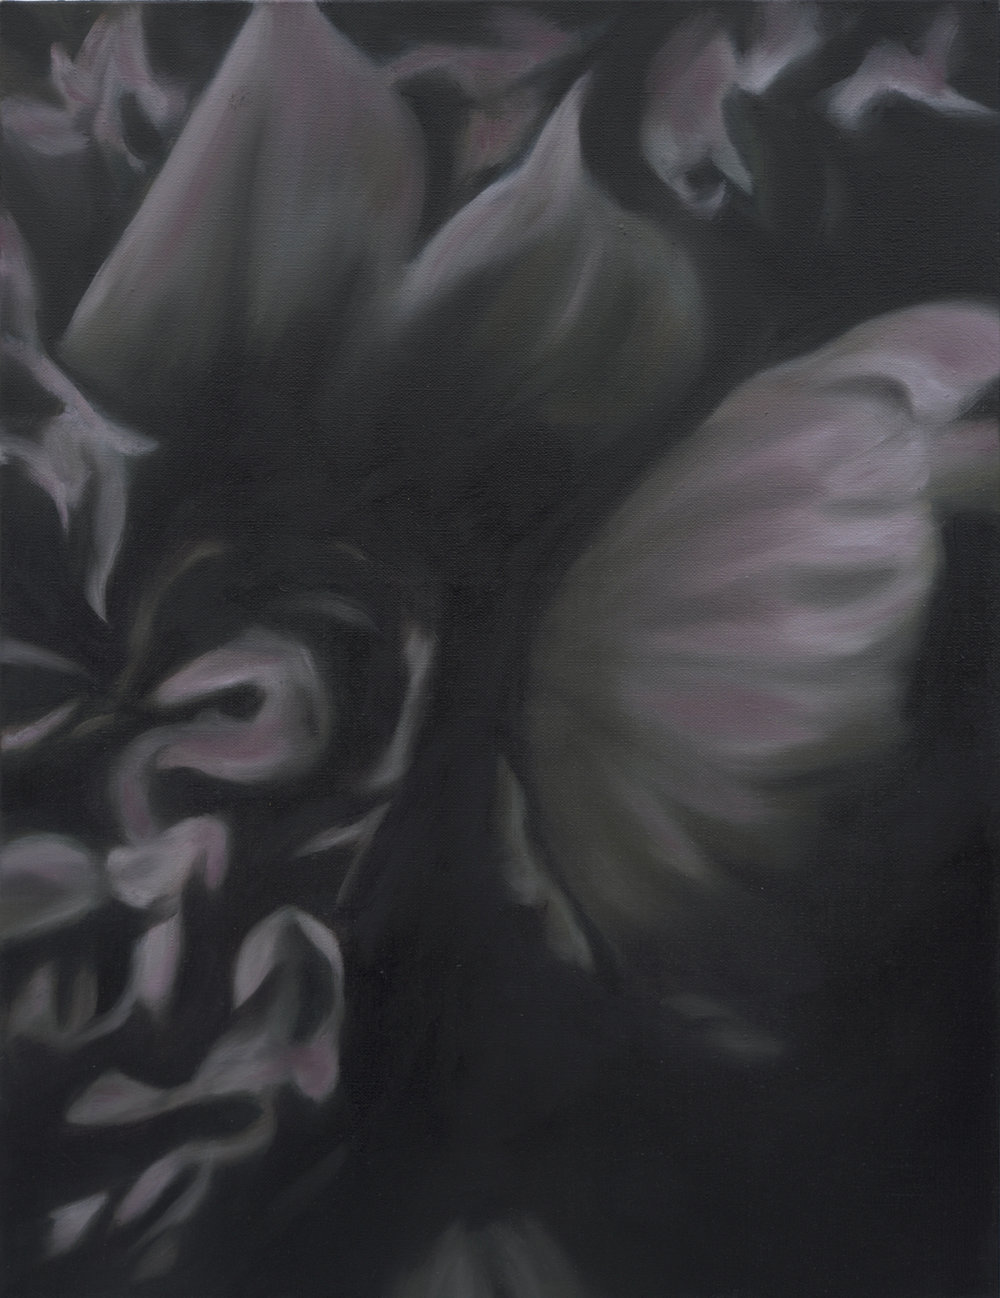 Language des fleurs et des choses muettes No.5,  2016  oil on linen, 36 x 36 in, 91 x 91 cm